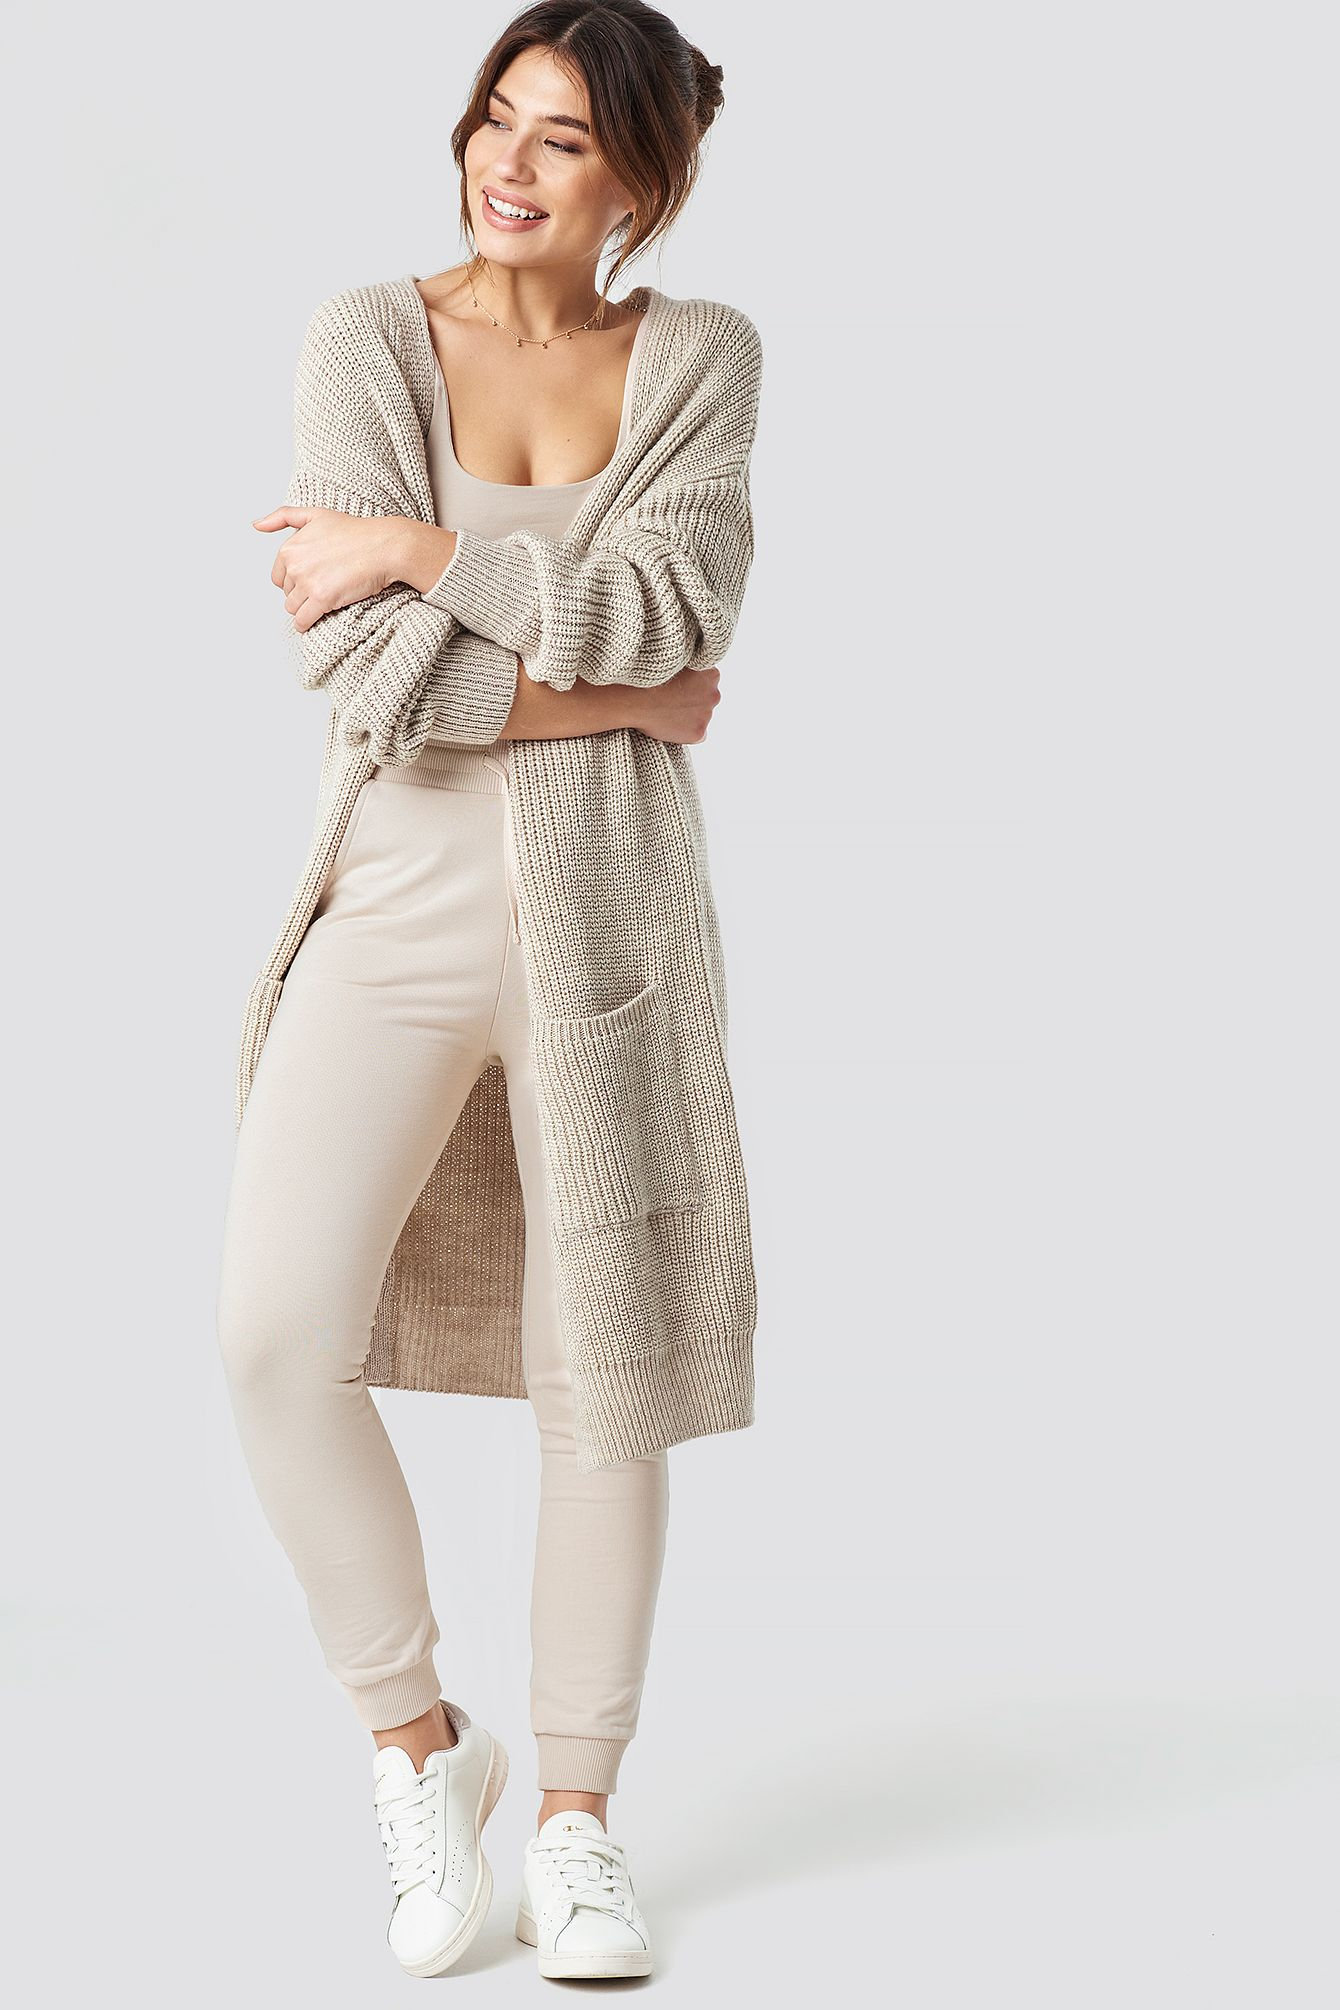 new product b4025 46be8 Pamela x NA-KD Knitted Cosy Cardigan - Beige | Yaya in 2019 ...